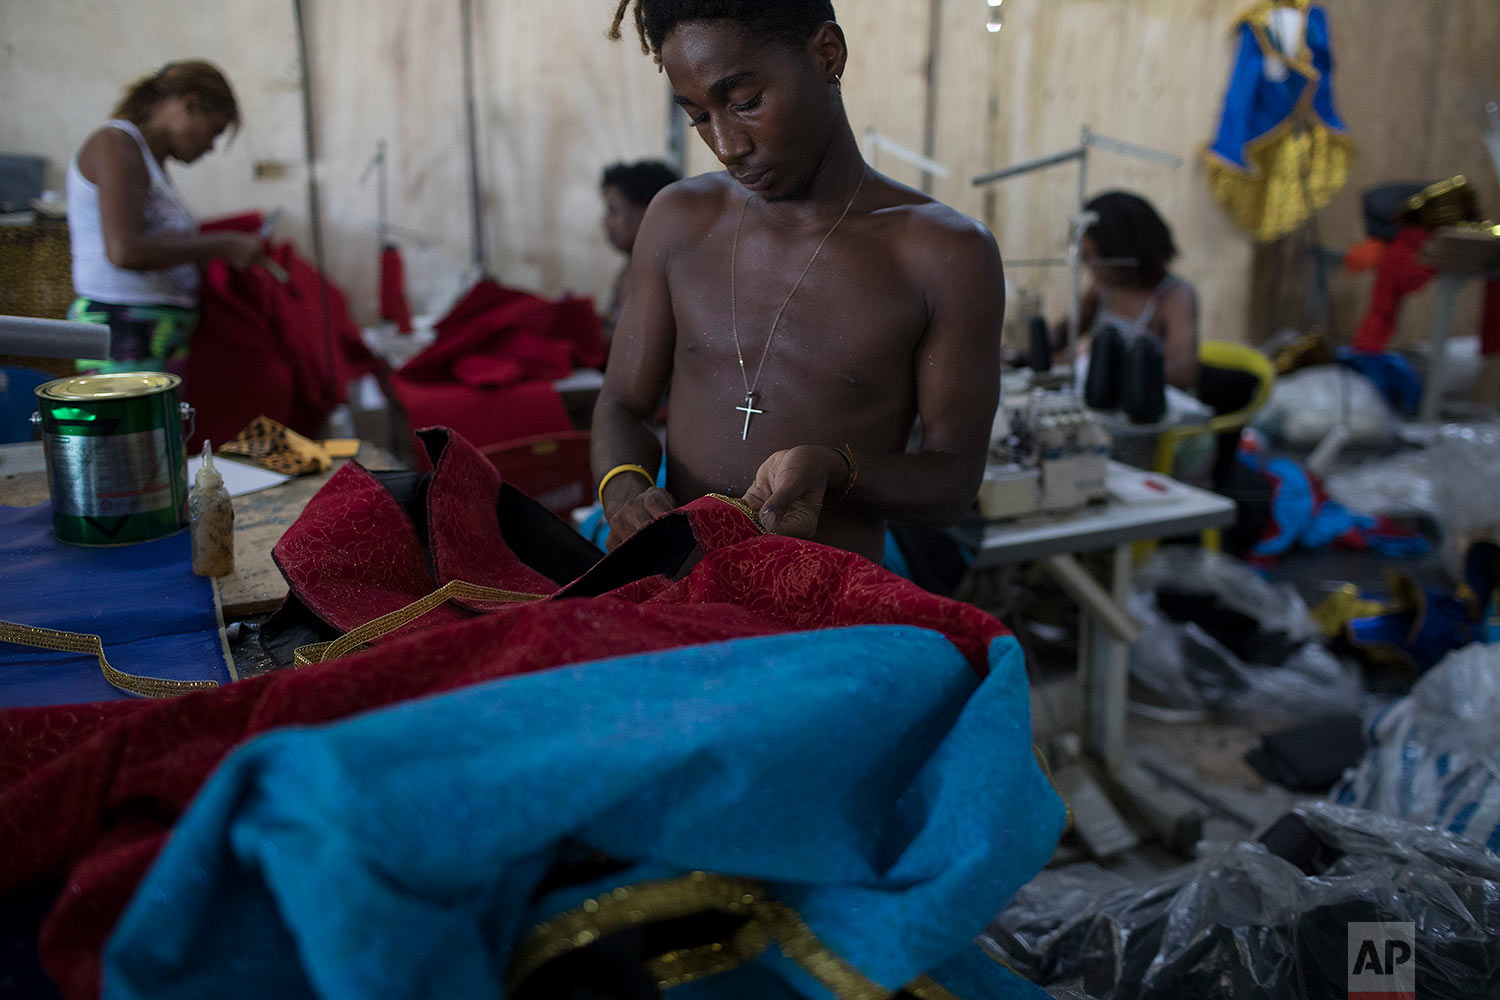 In this Jan. 16, 2018 photo, a man creates a carnival costume at the Paraiso do Tuiuti samba school, whose carnival theme this year is Brazil's history with slavery, in Rio de Janeiro, Brazil. Besides Brazil's inequalities in wealth distribution, the group complains about last year's labor law changes that scaled back benefits and made it easier for employers to hire temporary workers. (AP Photo/Leo Correa)